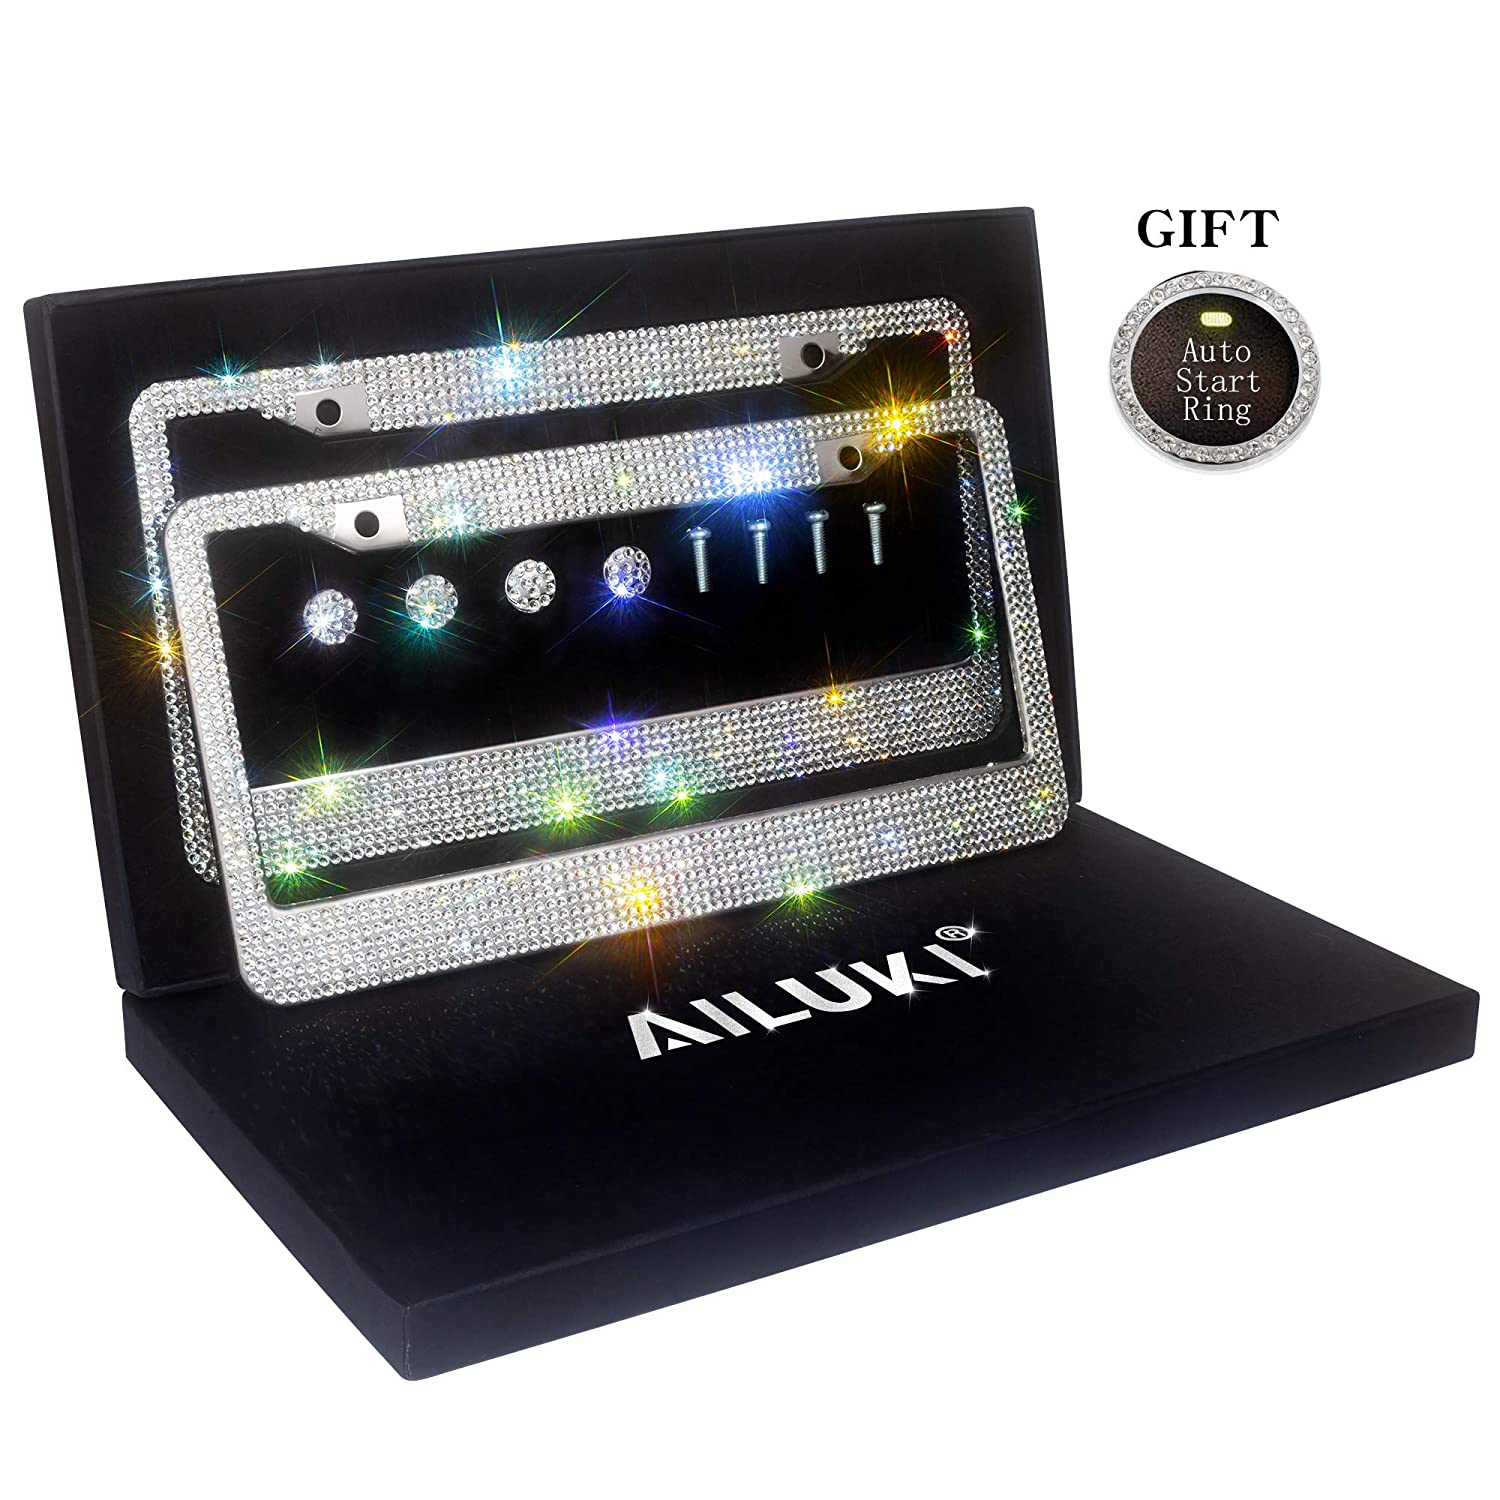 AILUKI License Plate Frame,2 Pack Luxury Handcrafted Rhinestone Bling License Plate Frames with Giftbox,1000 Pcs Finest 14 Facets SS20 Rhinestone Crystal,Anti-Theft Screw Caps,Auto Start Ring